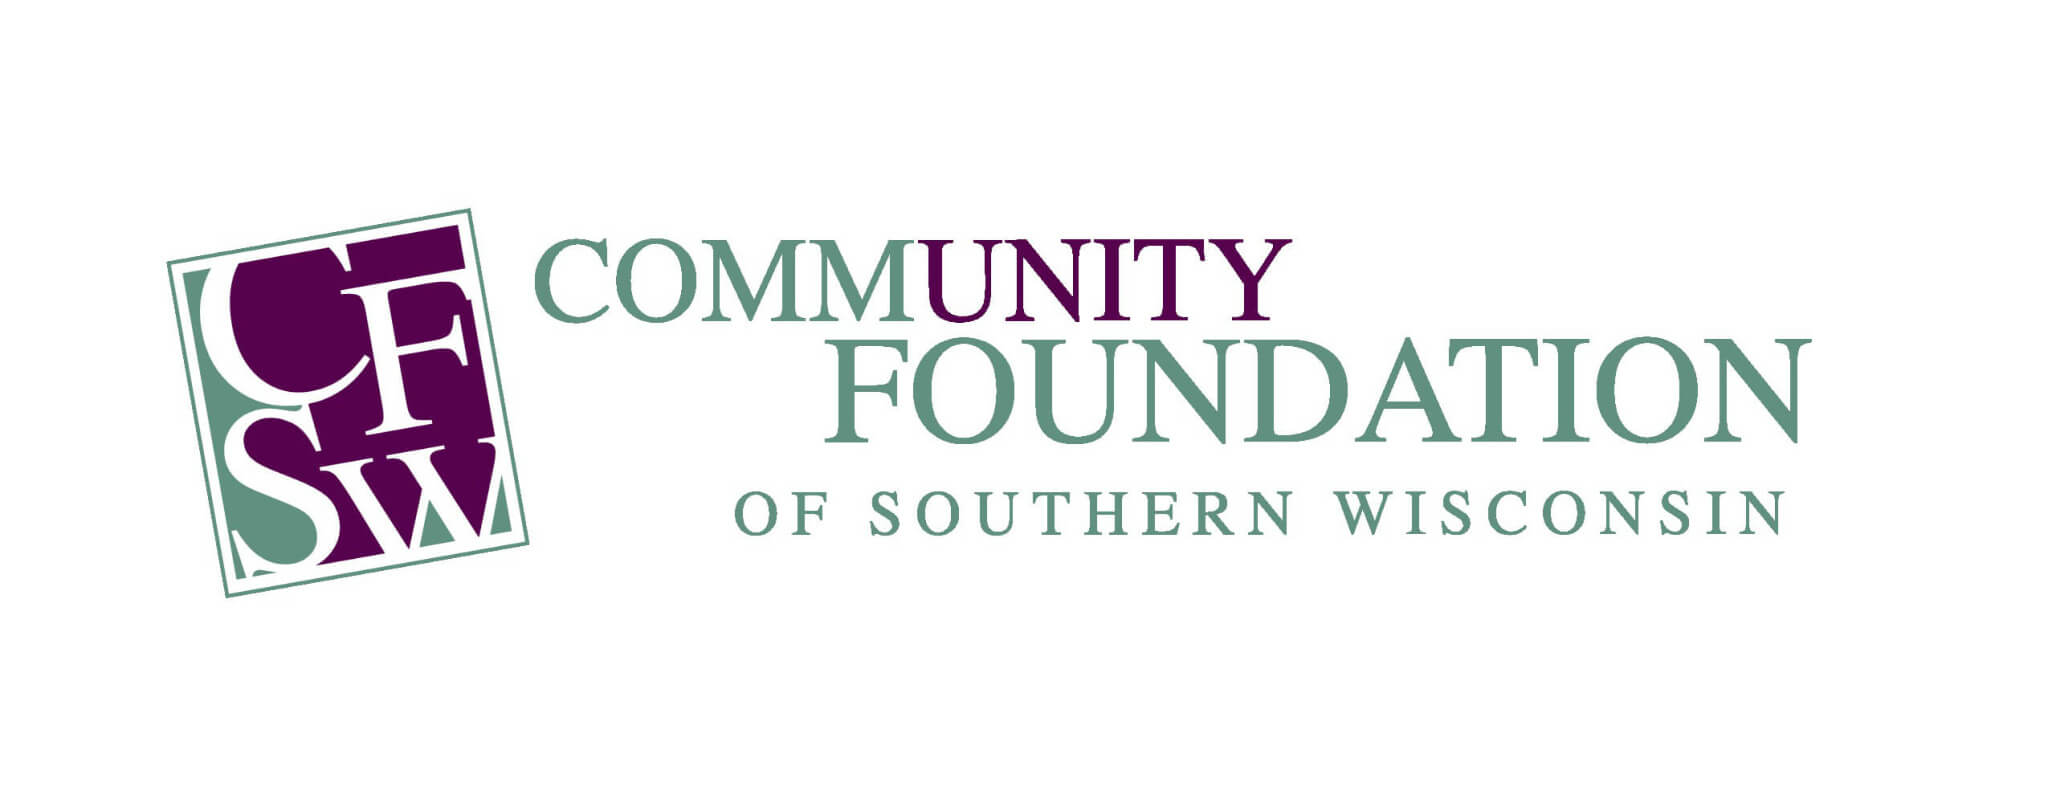 Community Foundation of Southern Wisconsin logo